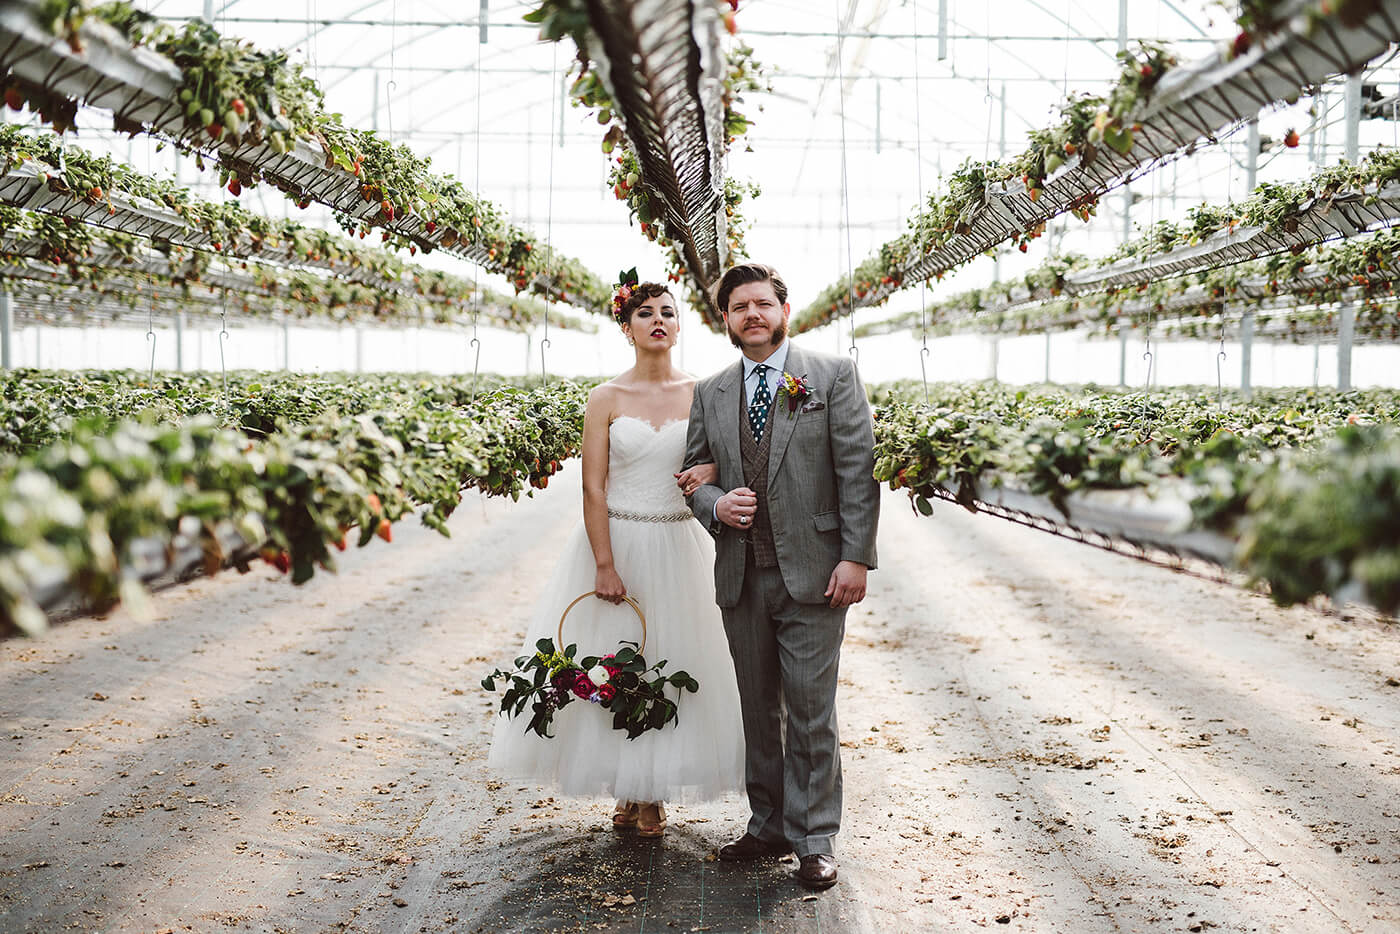 roma-organizacao-eventos-editorial-mid-century-modern-wedding-in-a-strawberry-field-14